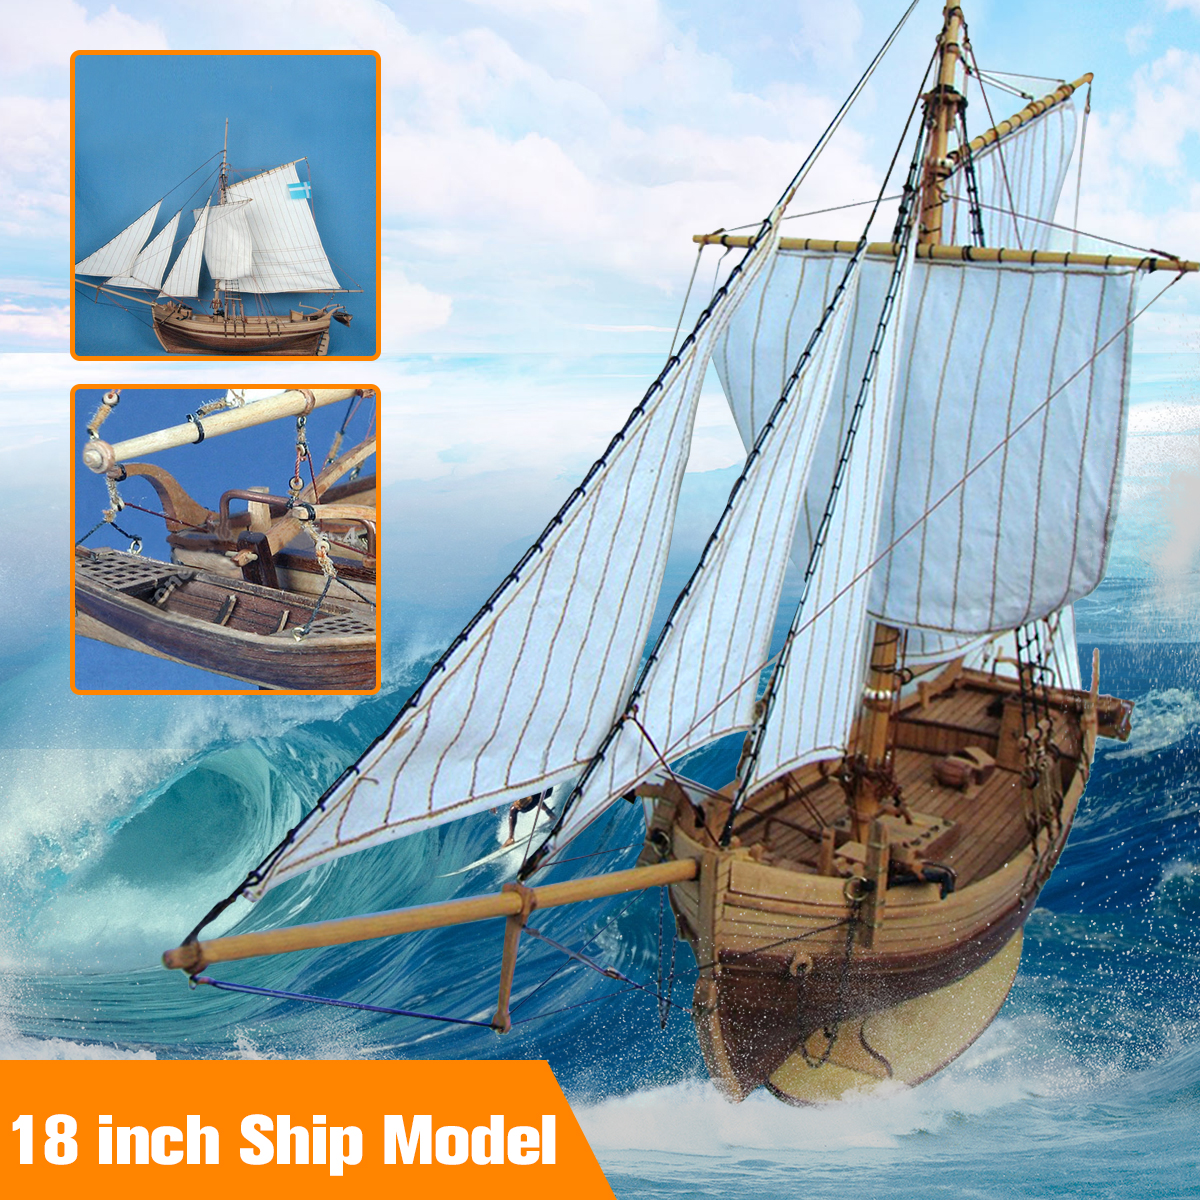 18 inch Classics Sail Boat Model Wooden Swedish Sailboat Ship Kits Home Model Building Kits Decoration Boat Gift Toy цена